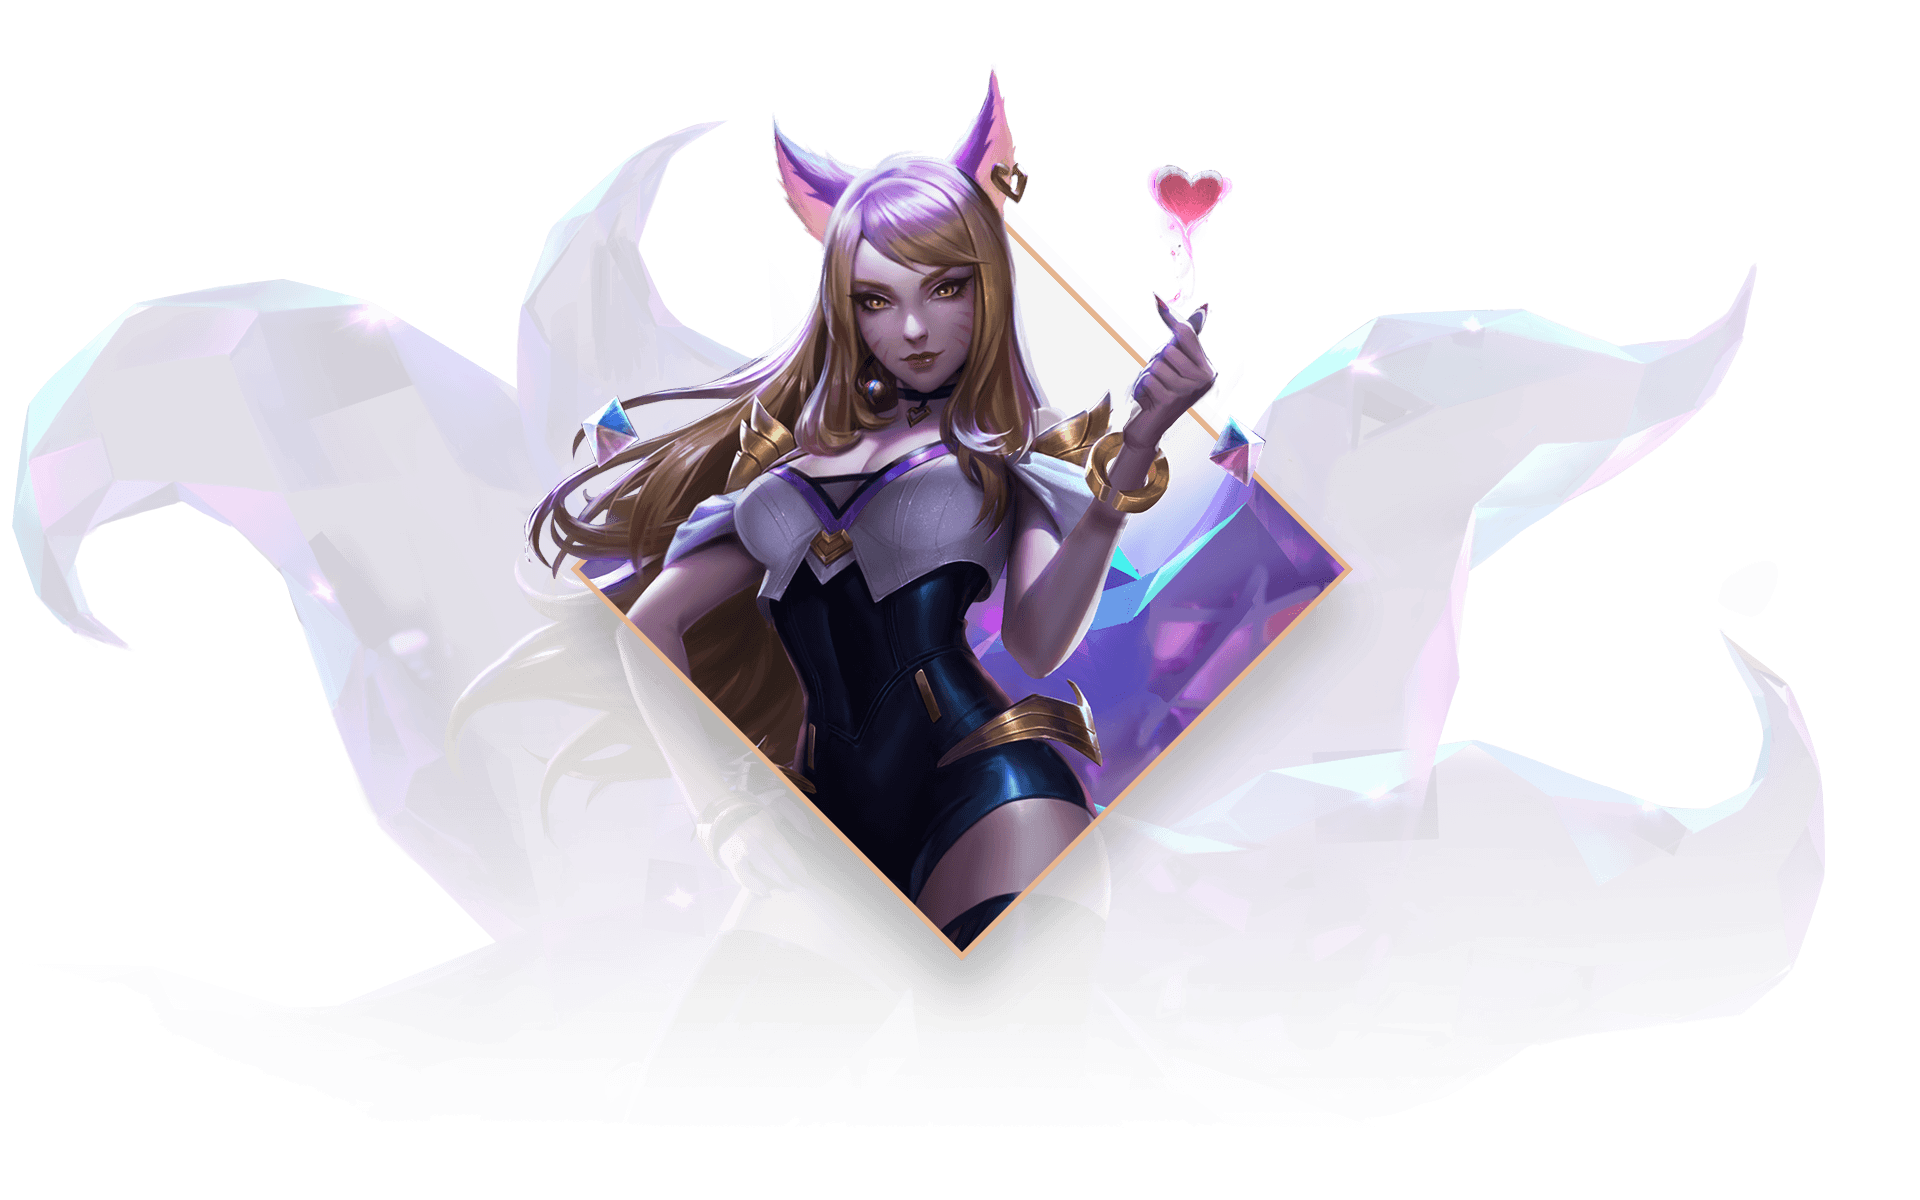 https://universe-meeps.leagueoflegends.com/v1/assets/images/kda/kda-splash-cropped-ahri.png